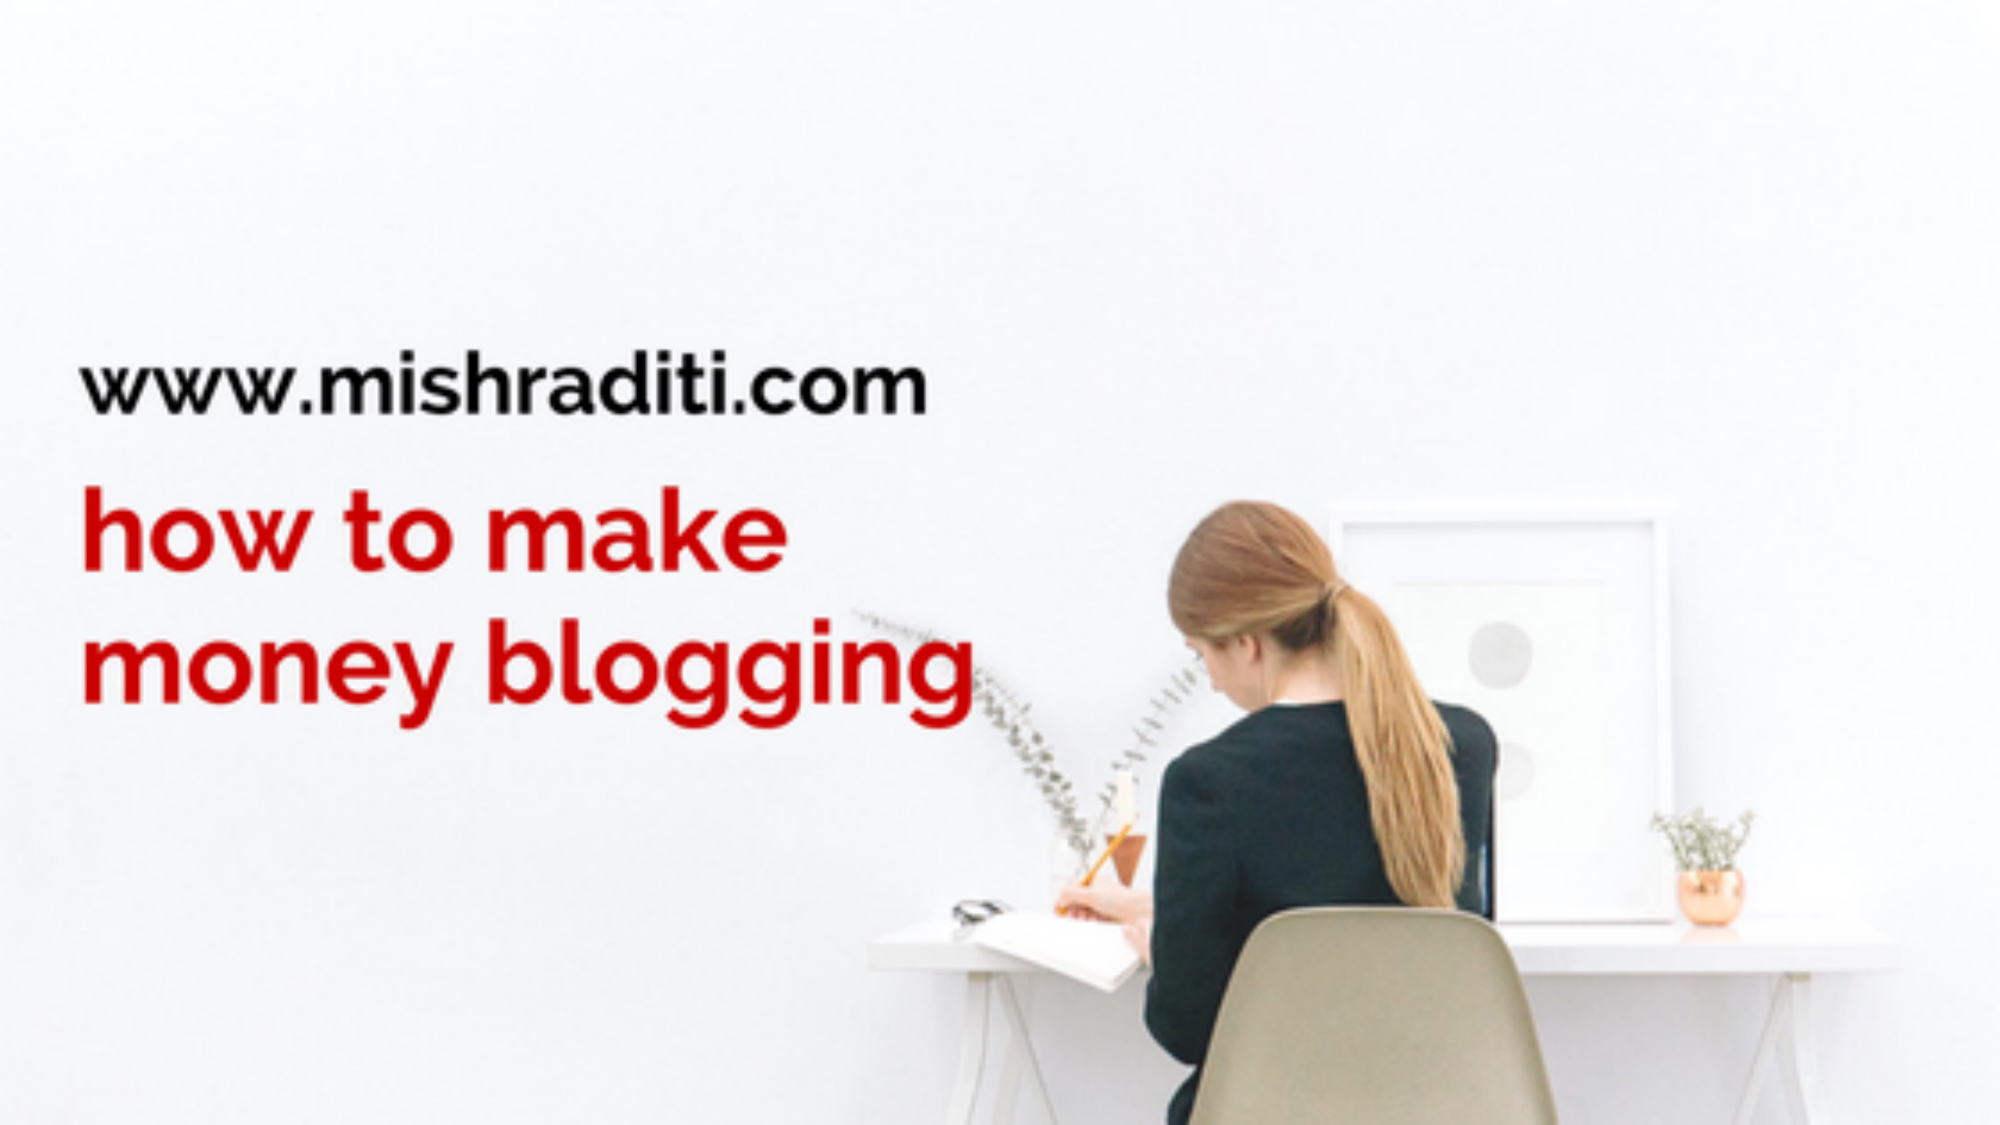 How to Make Money Blogging in a Simple Way